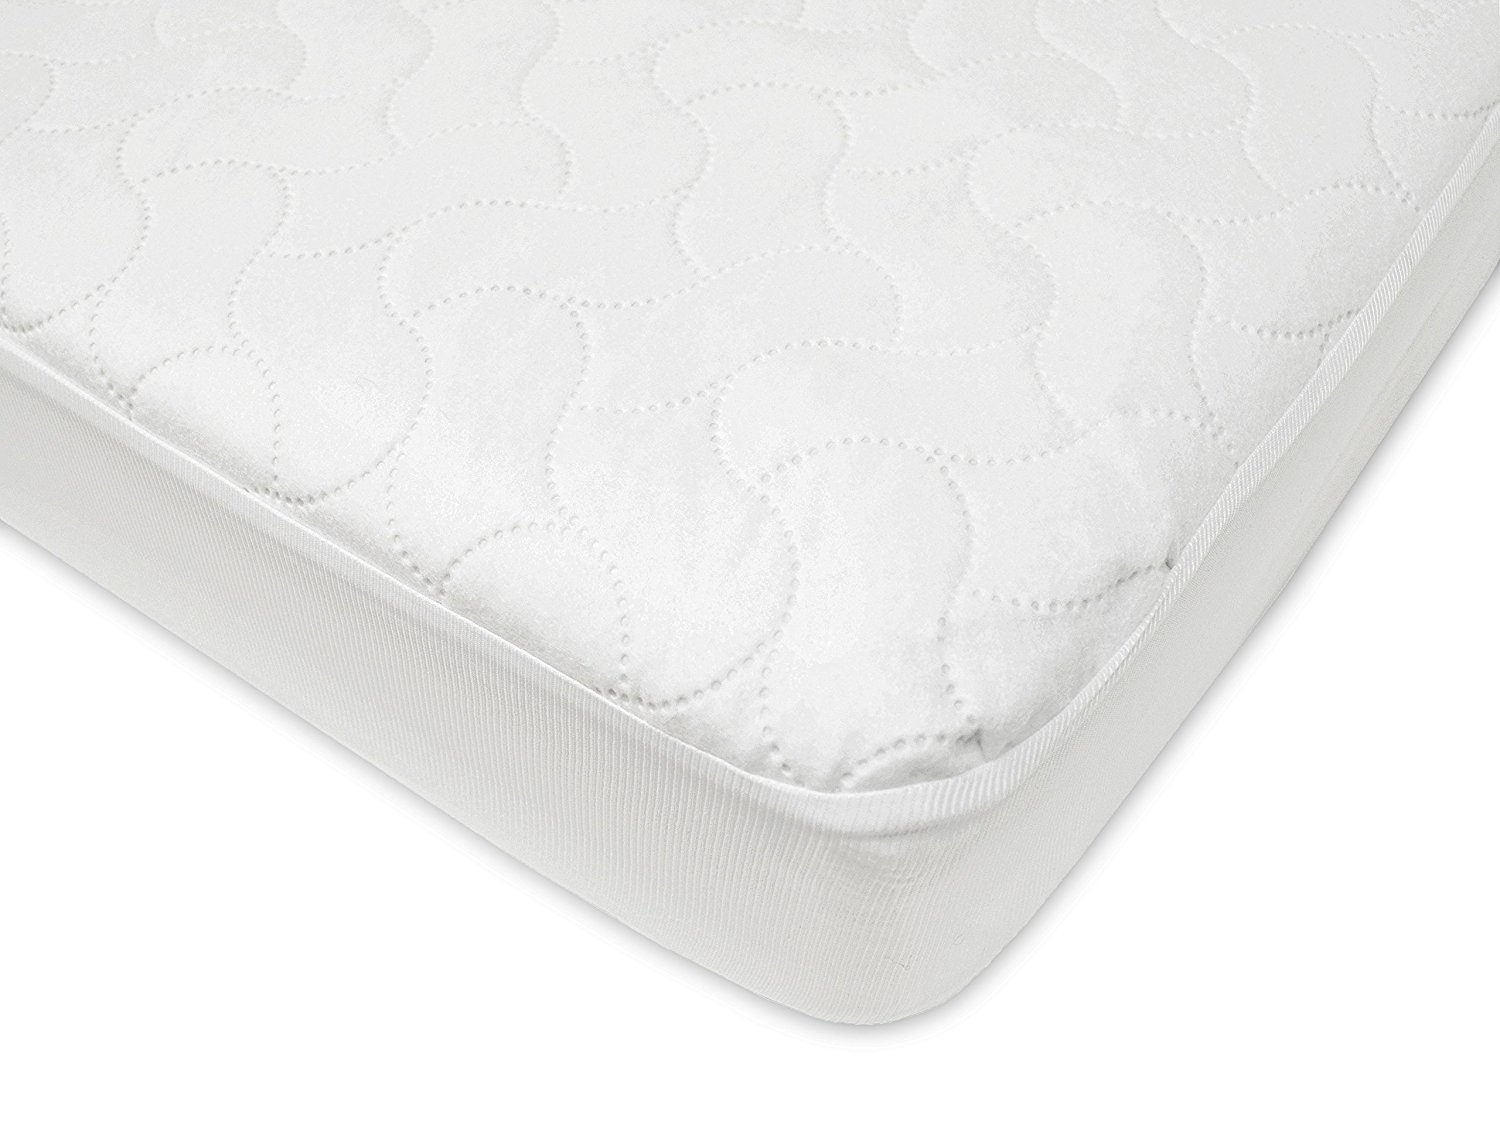 American Baby Company Quilted Crib Mattress Pad